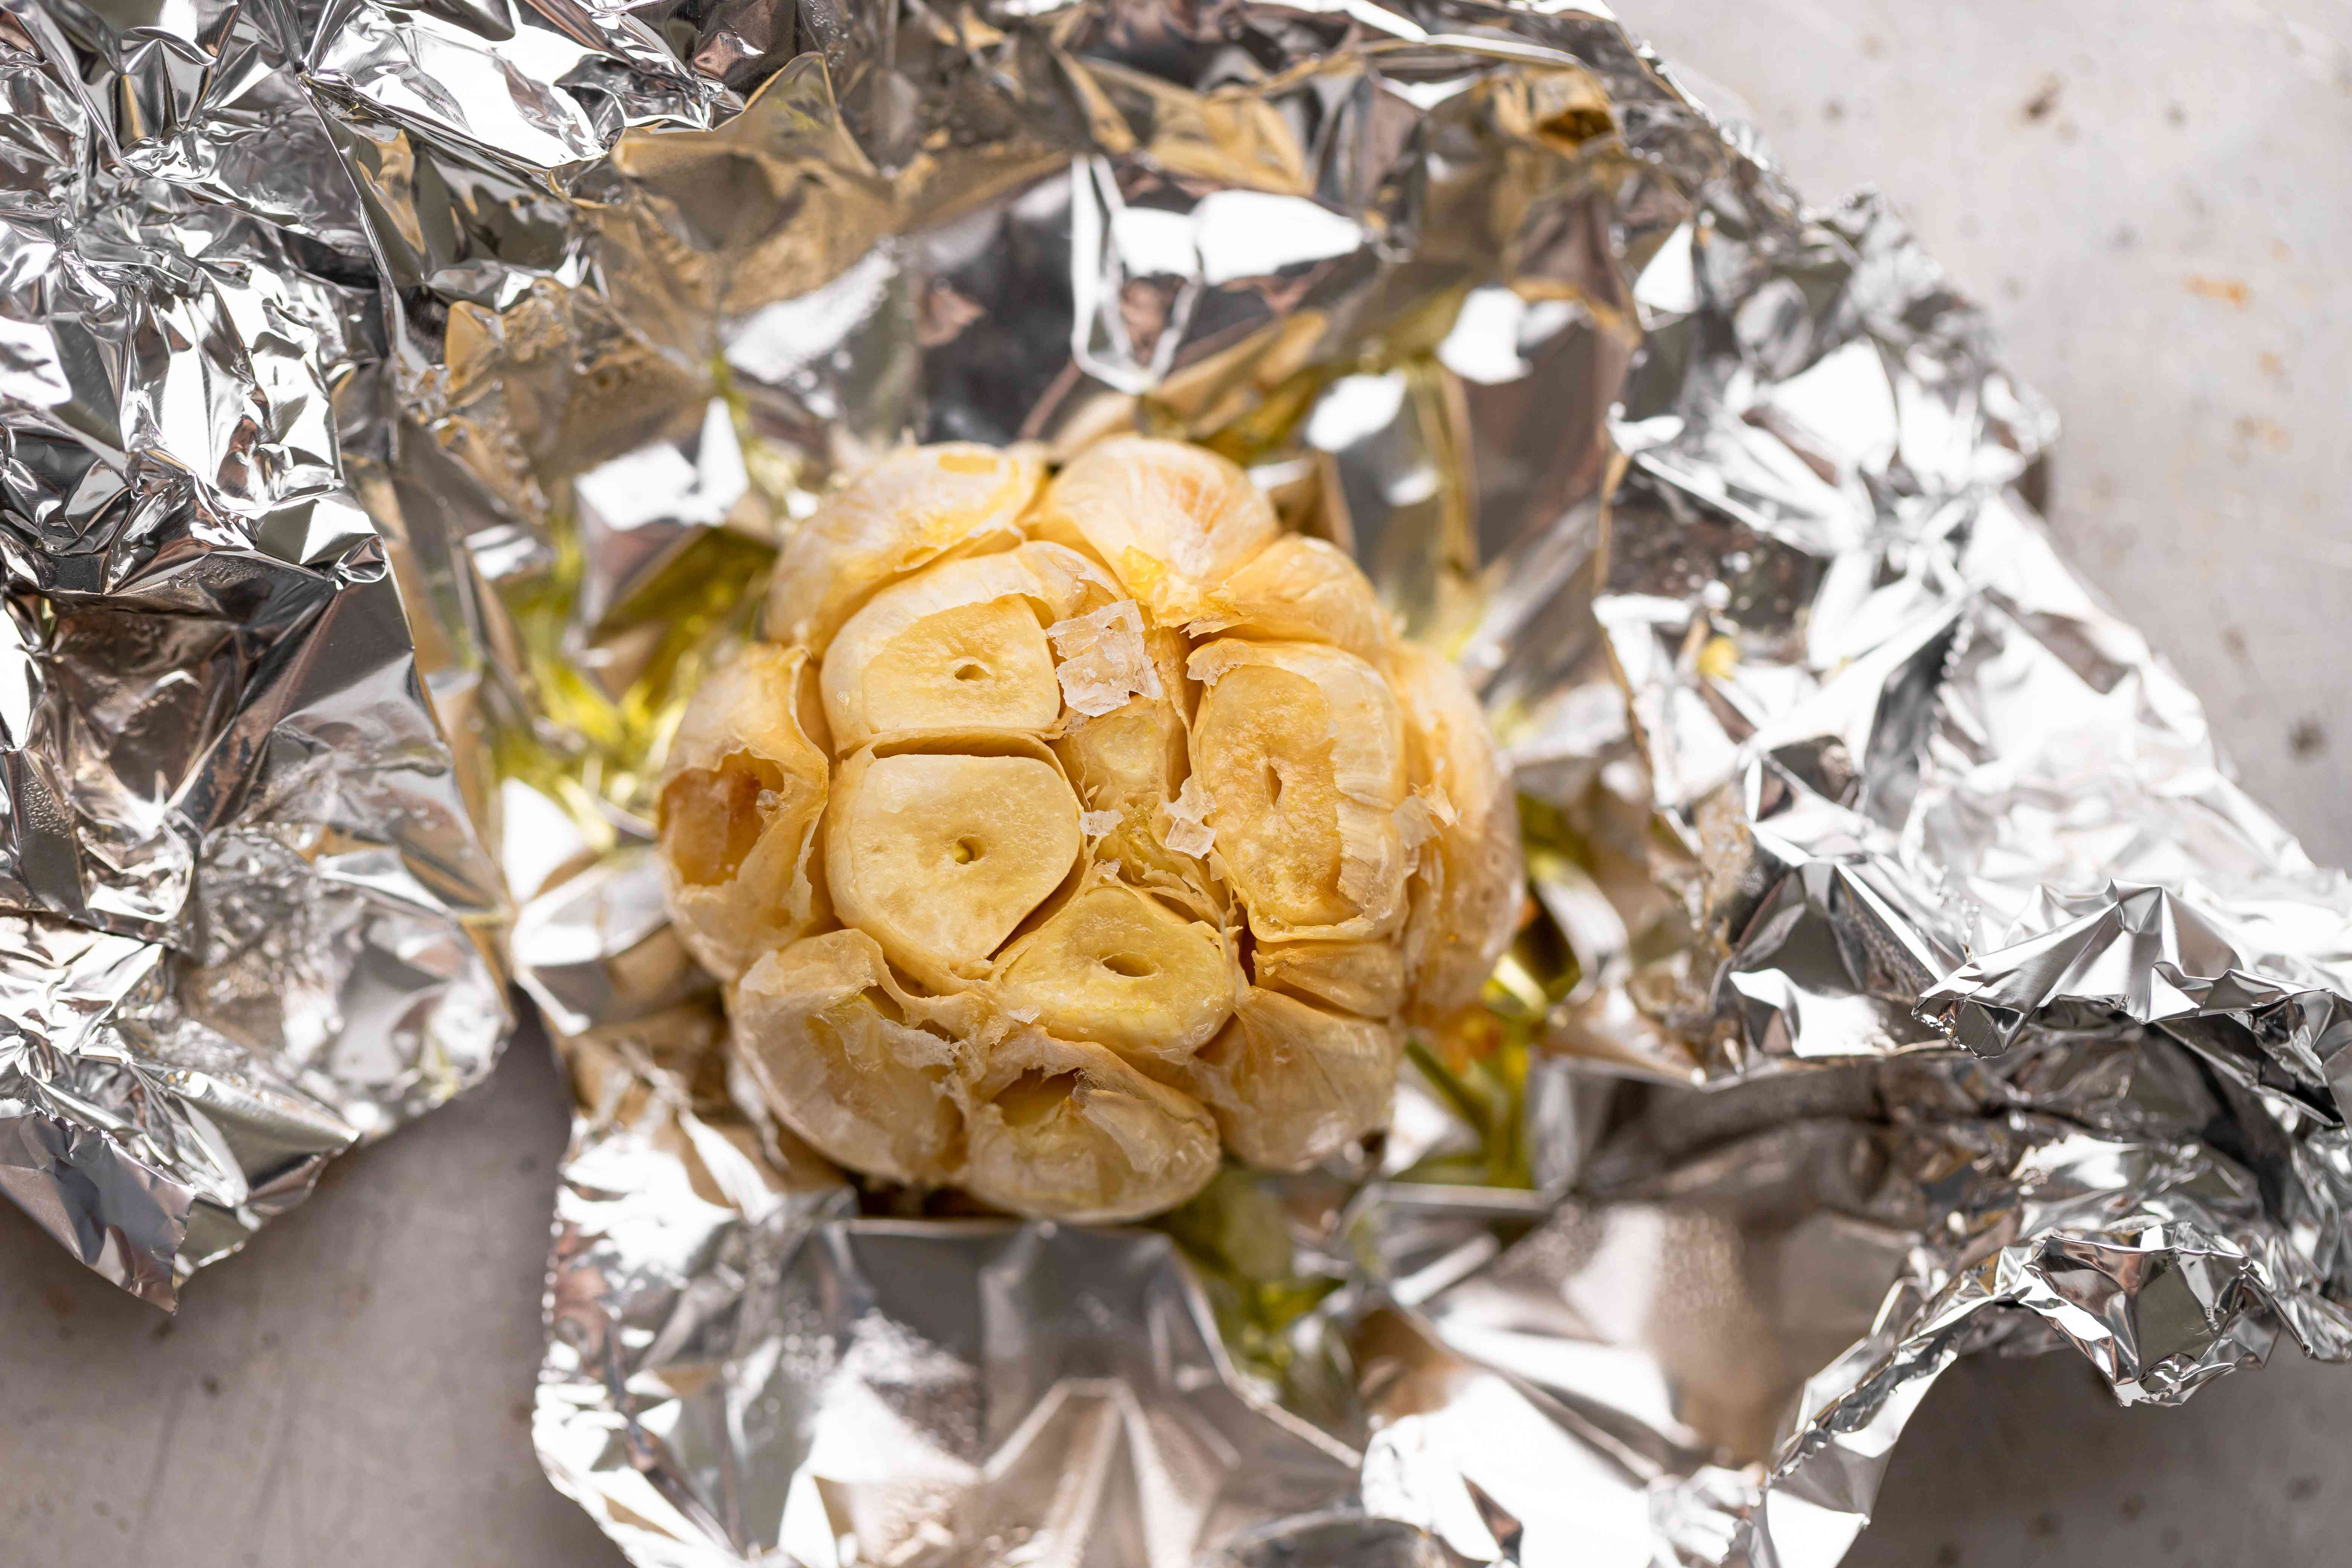 A roasted head of garlic in foil to make a garlic mashed potatoes recipe.